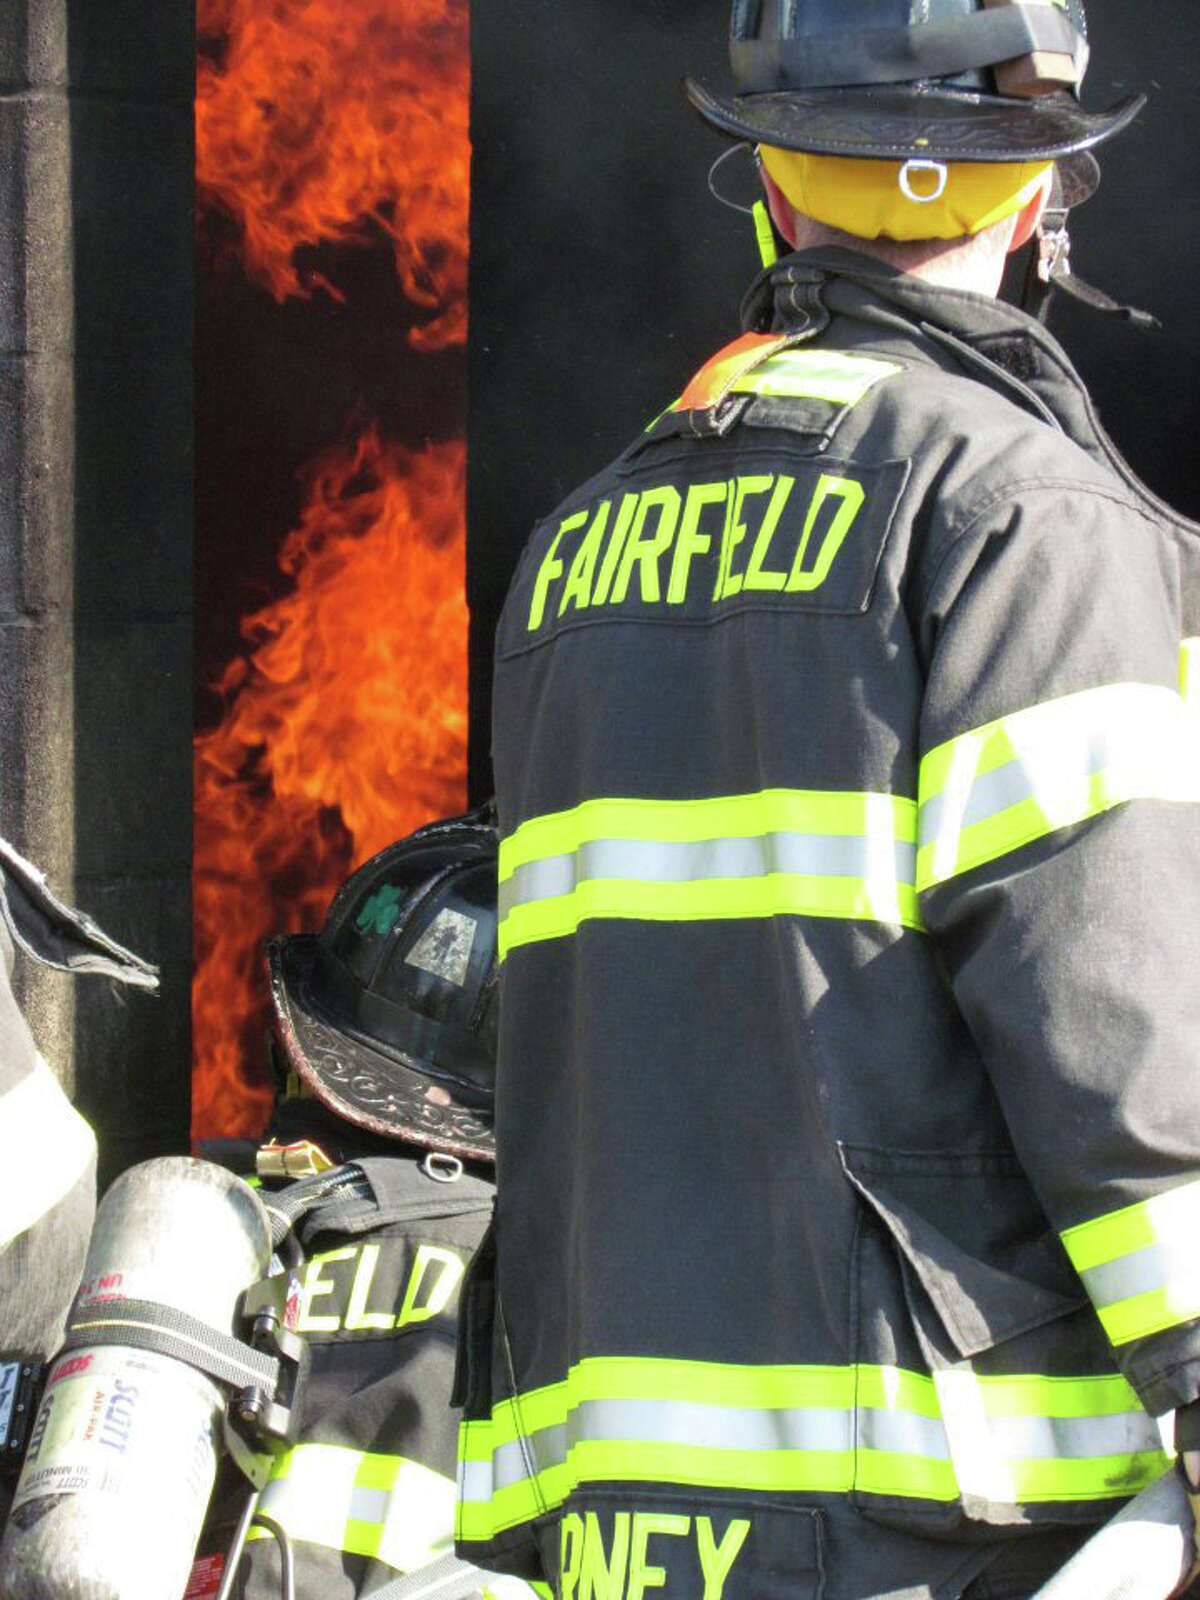 Firefighters tackle a set blaze at the Fairfield fire training center Saturday during FireOps 101.